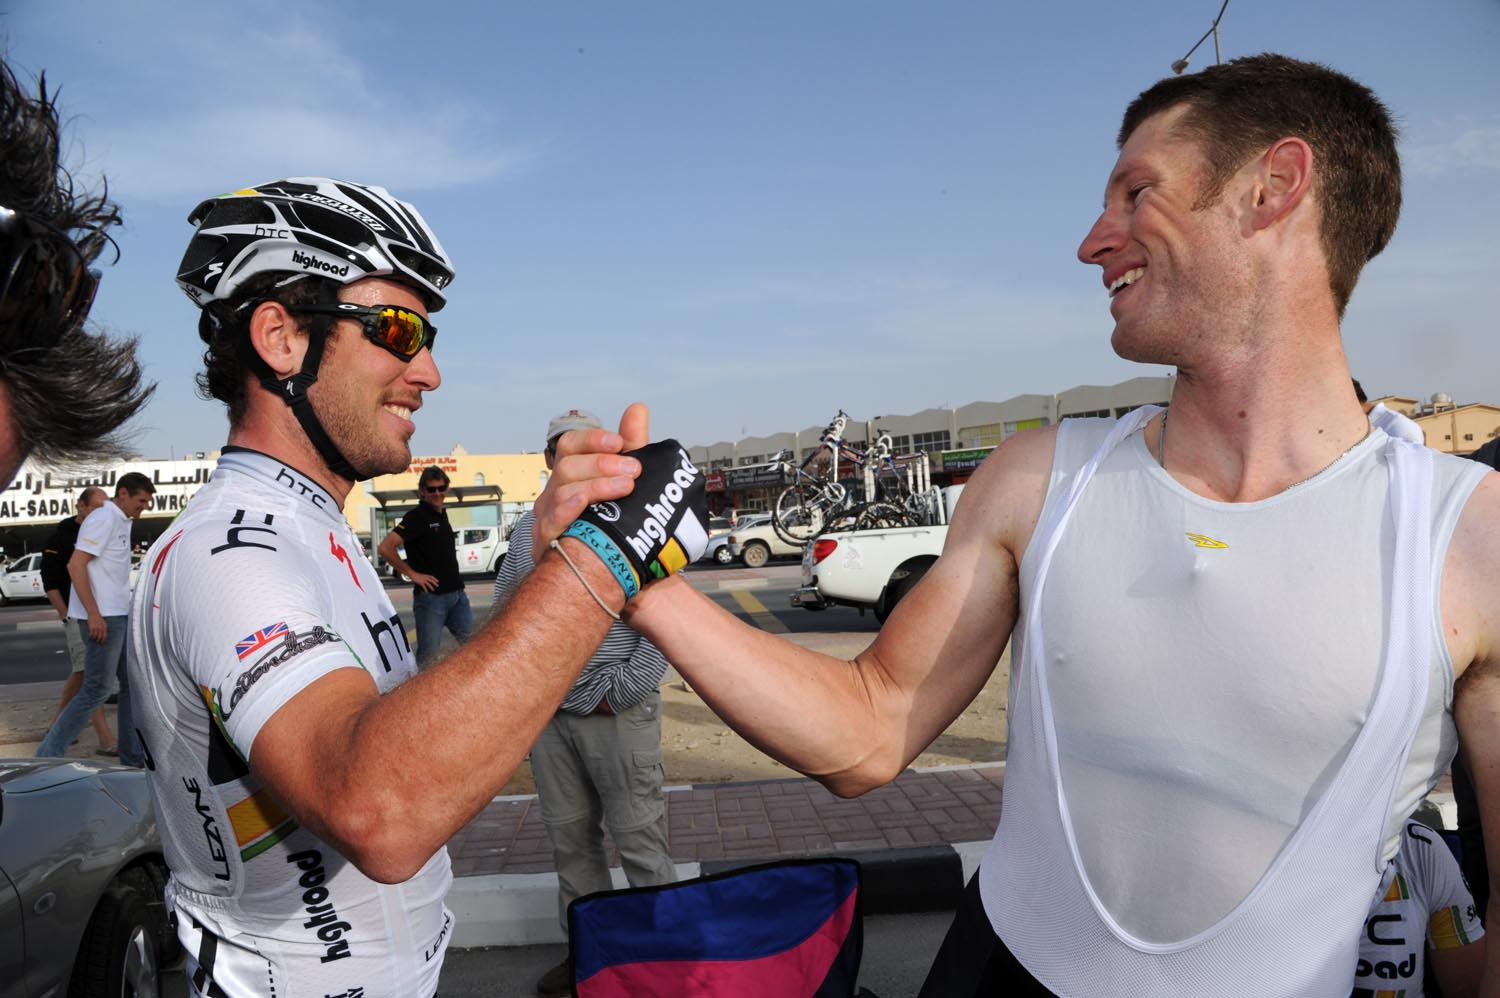 Mark Cavendish and Mark Renshaw, Tour of Qatar 2011, stage four